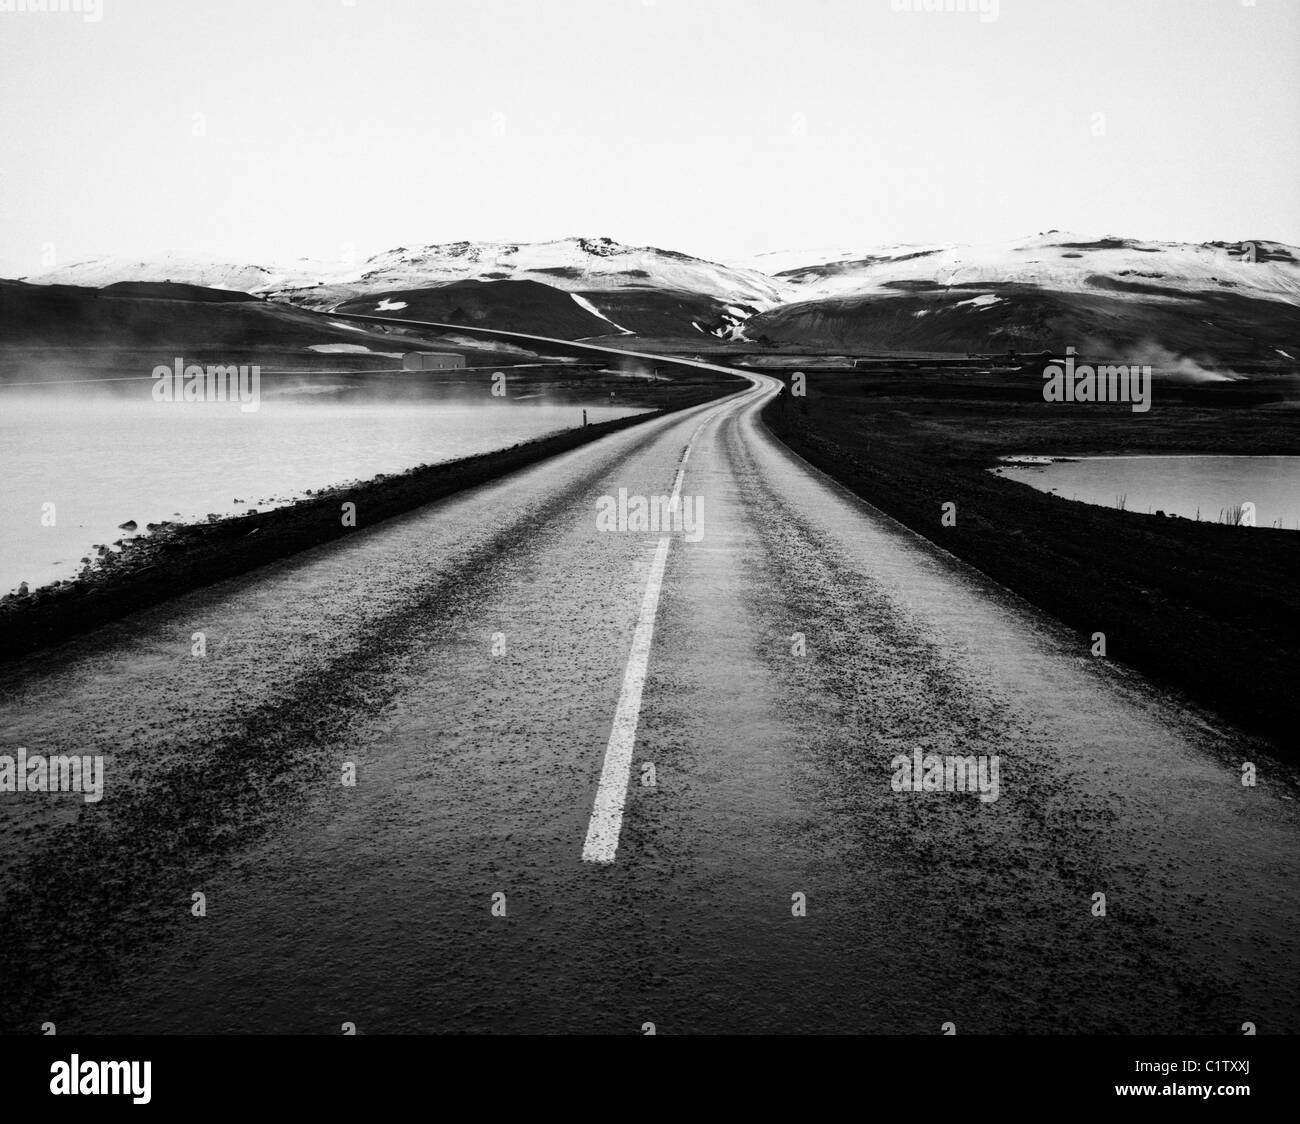 The Ring Road at Myvatn, Iceland - Stock Image